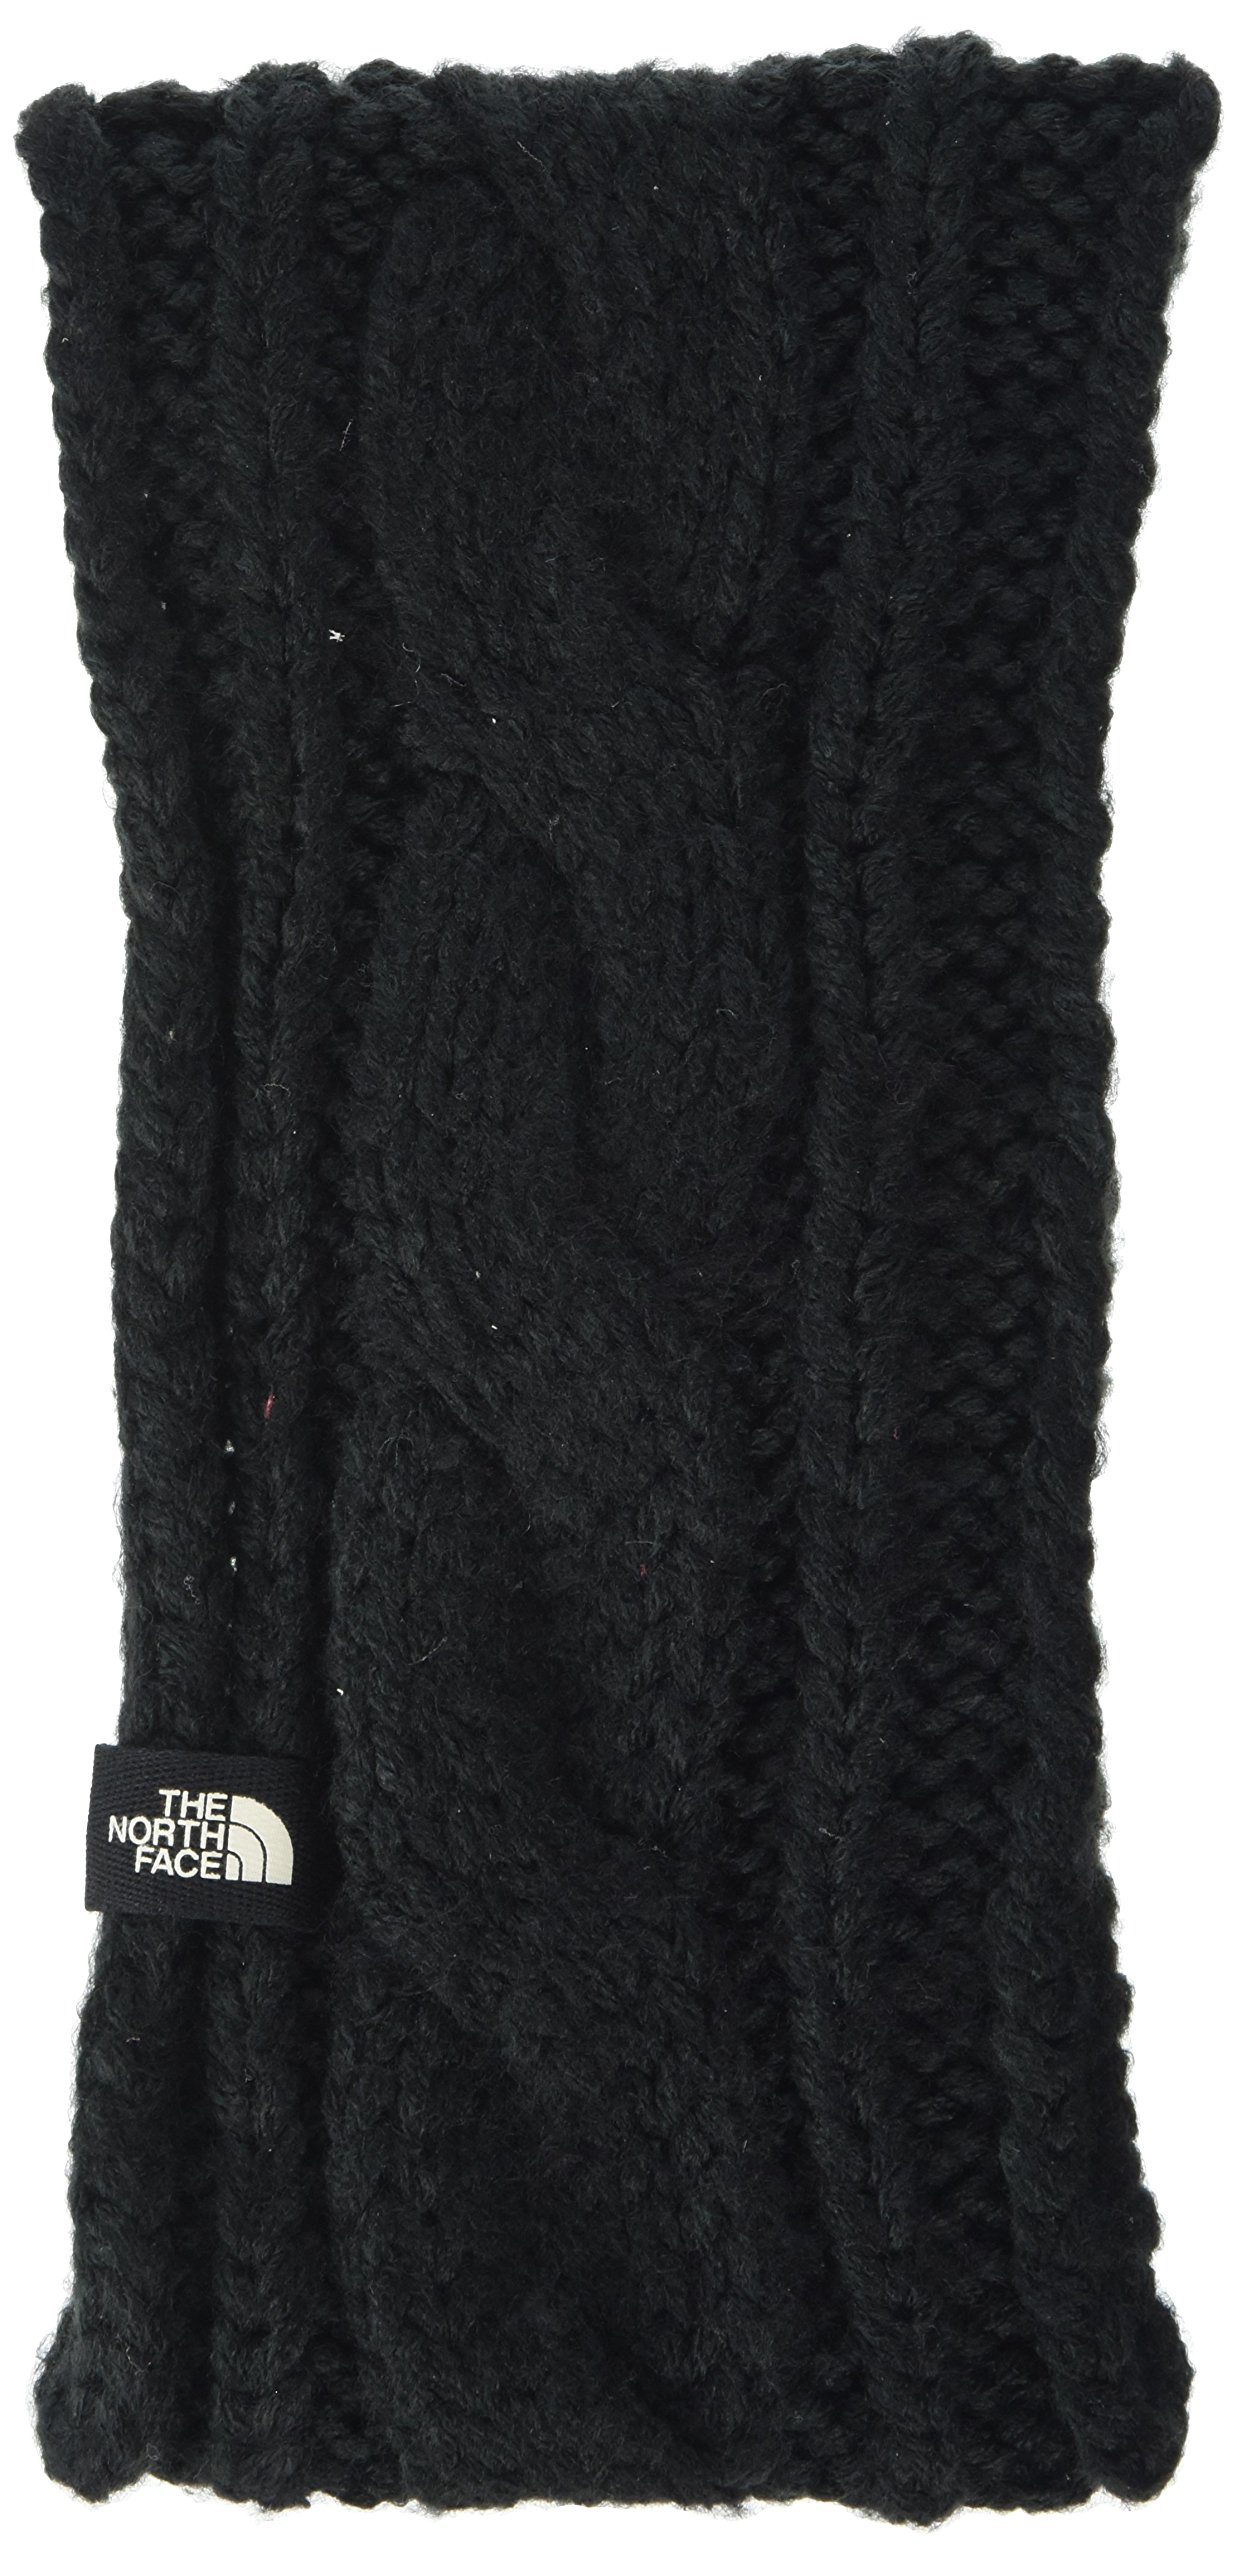 The North Face Women's Cable Eargear, TNF Black, One Size by The North Face